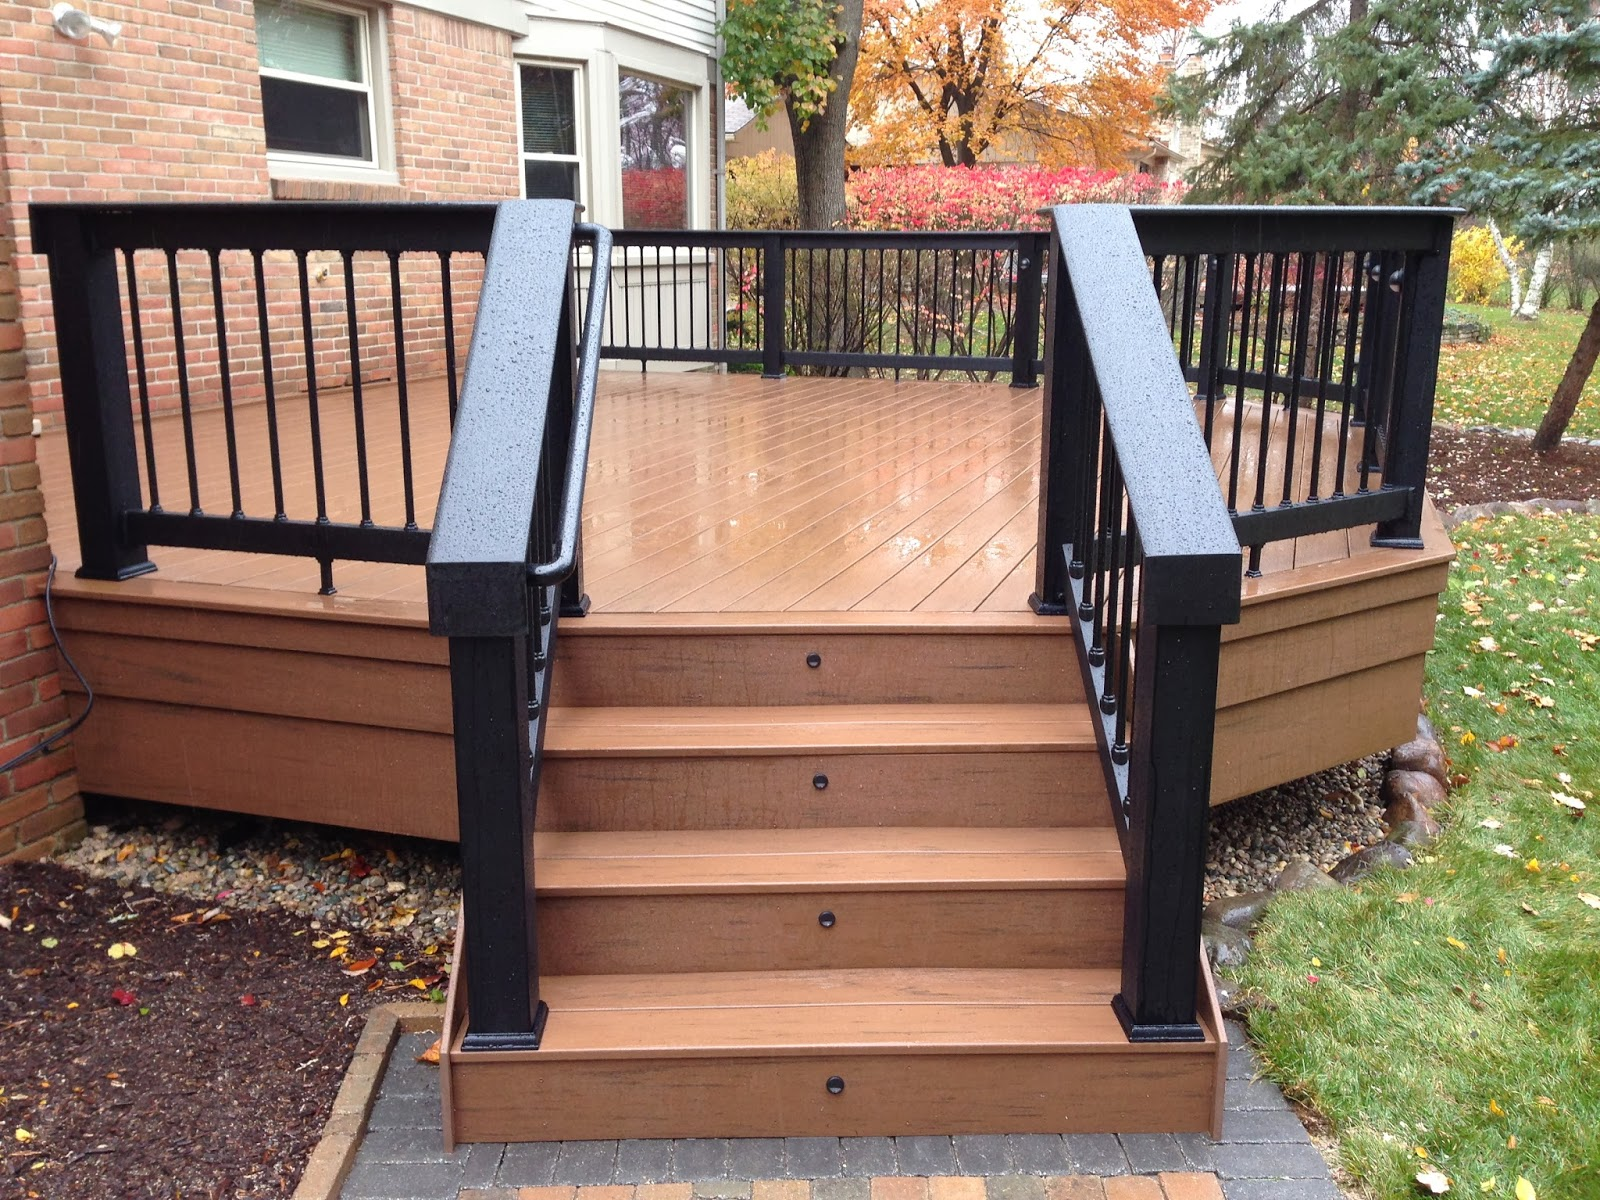 Outdoor Living: Deck designs from 2013 - Adding flair to a ... on Wood Deck Ideas For Backyard  id=94713